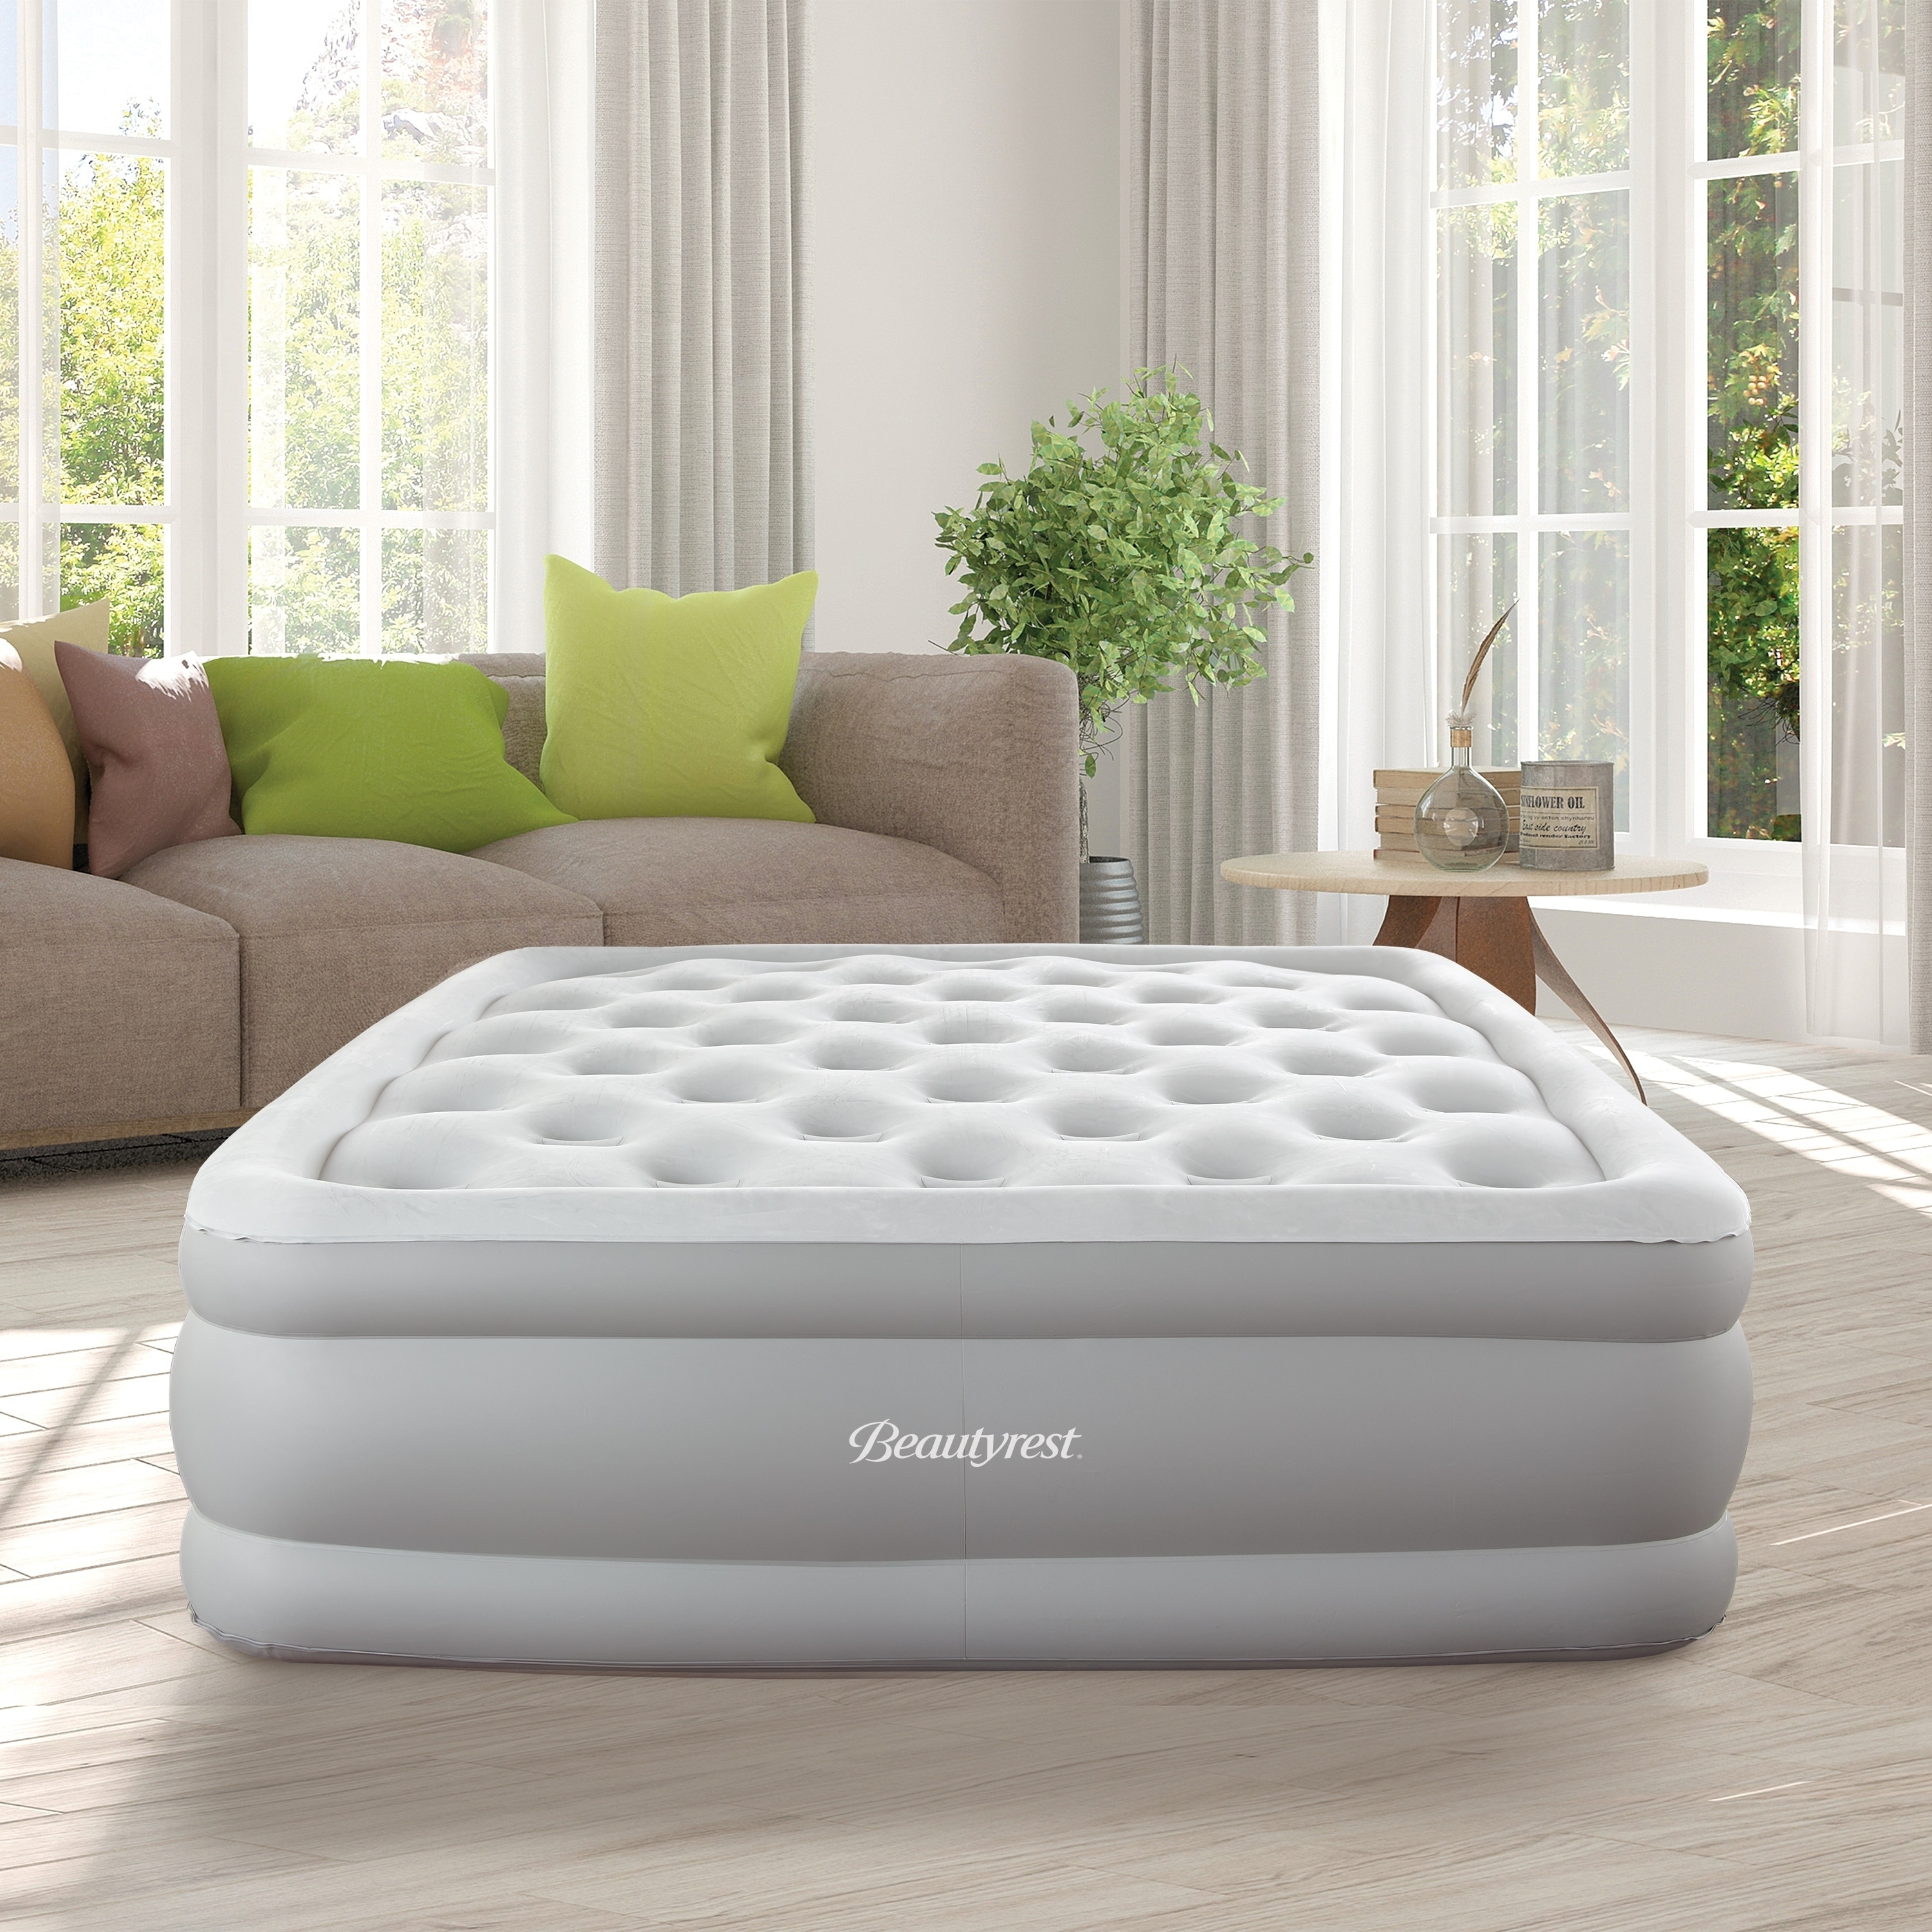 Beautyrest Sky Rise 16-inch Full Size Adjustable Comfort Coil Top Raised Air Bed Mattress with Edge Support and Express Pump & Shop Beautyrest Sky Rise 16-inch Full Size Adjustable Comfort Coil ...